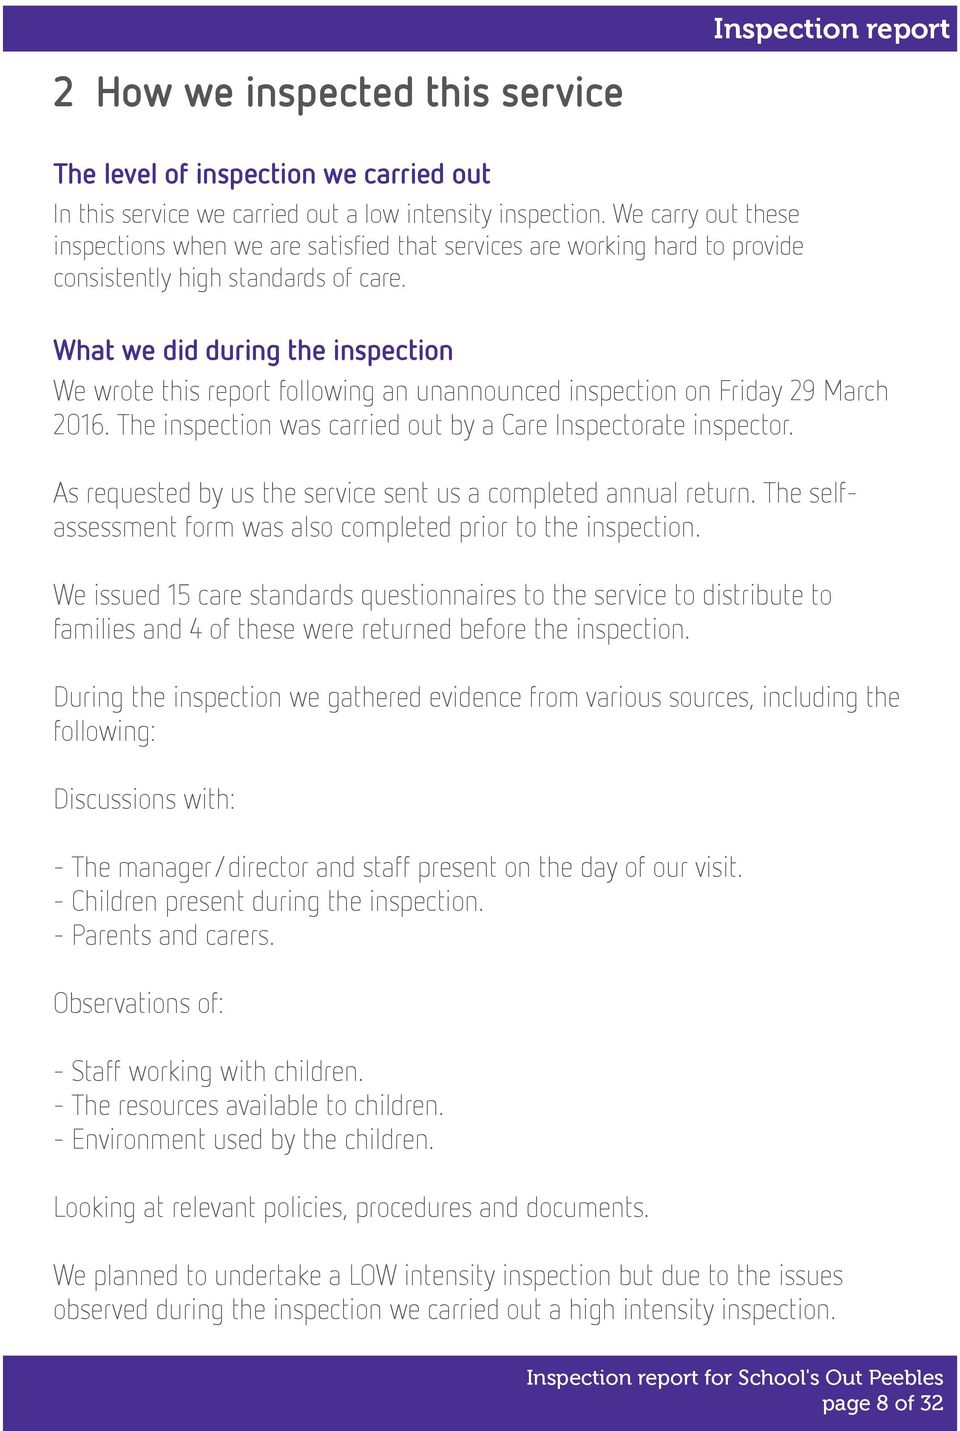 What we did during the inspection We wrote this report following an unannounced inspection on Friday 29 March 2016. The inspection was carried out by a Care Inspectorate inspector.